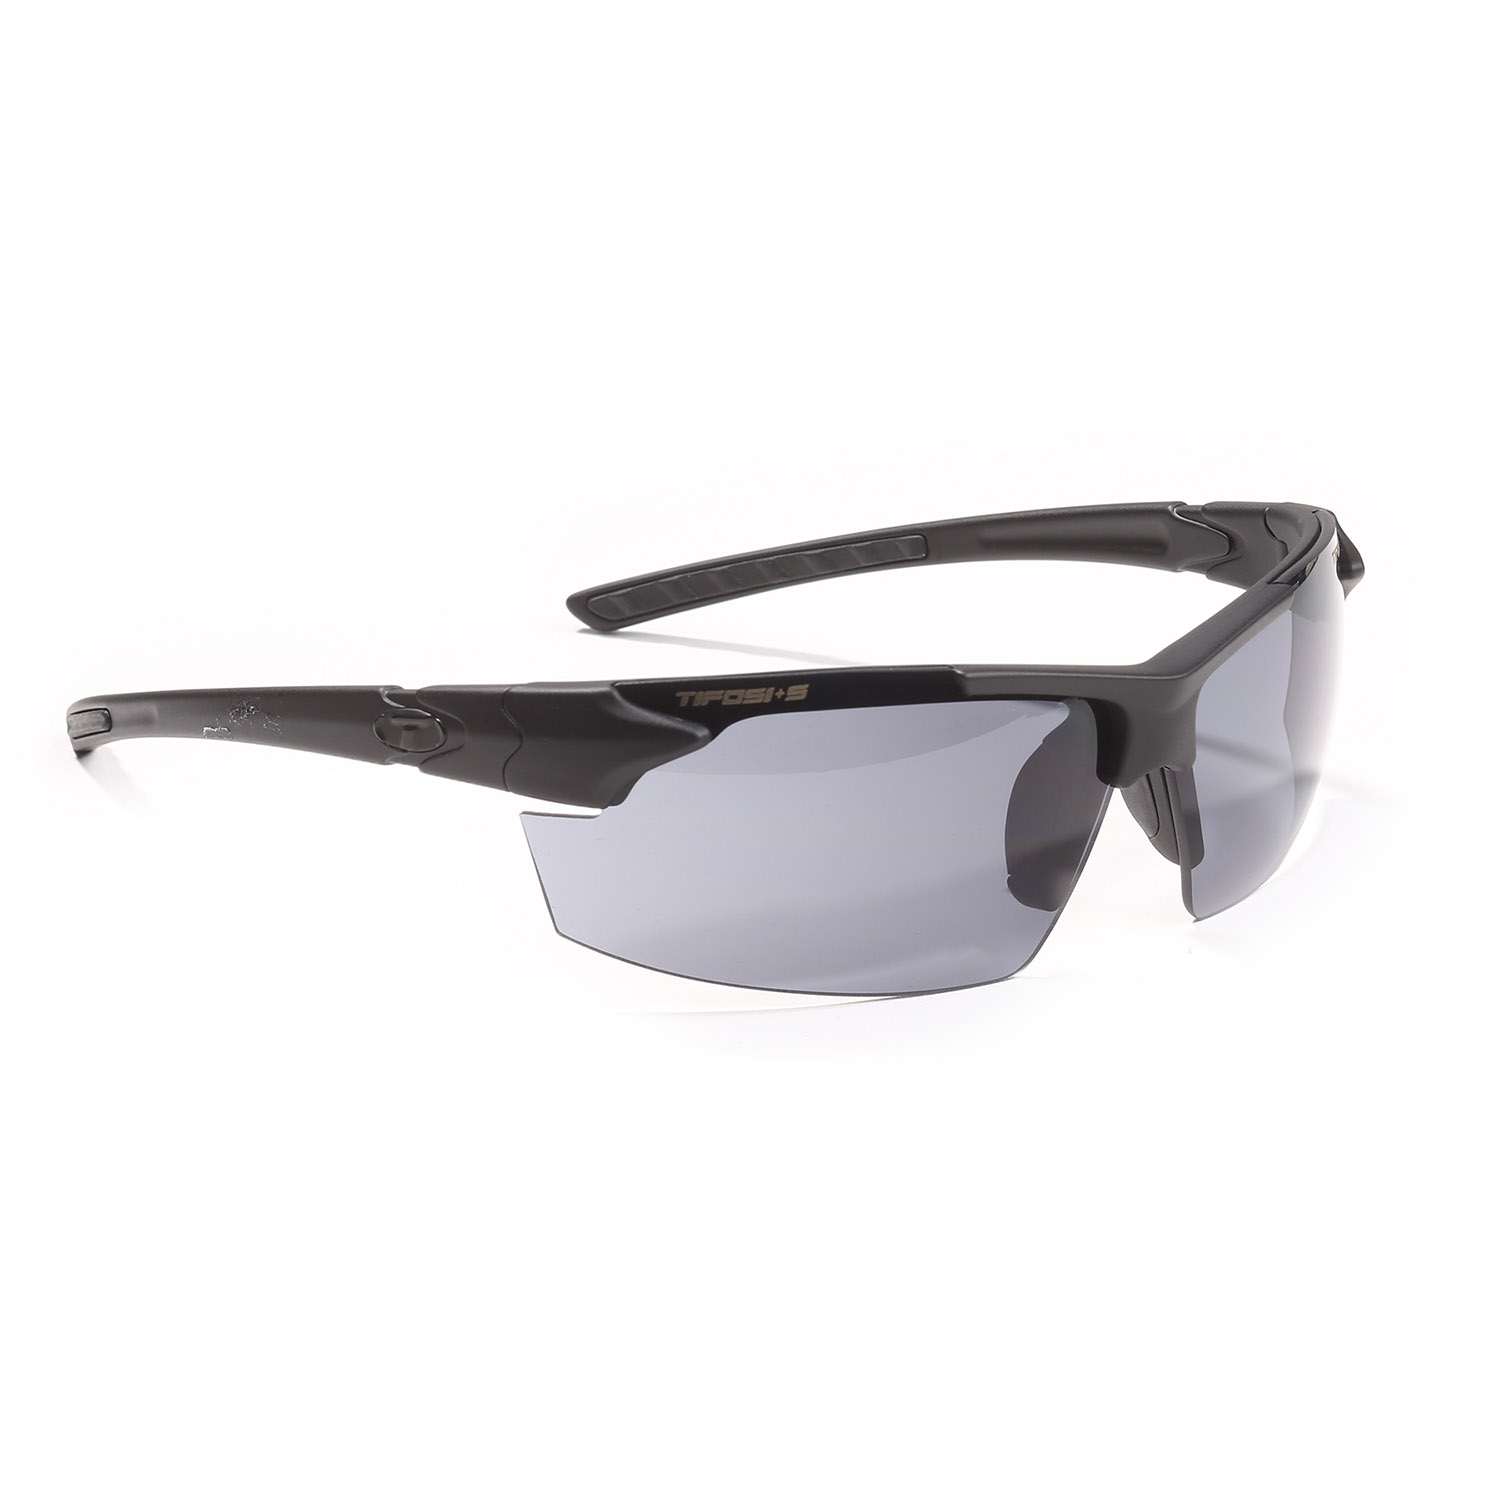 c2c3d2041481 Tifosi Optics Jet FC Tactical Safety Sunglasses